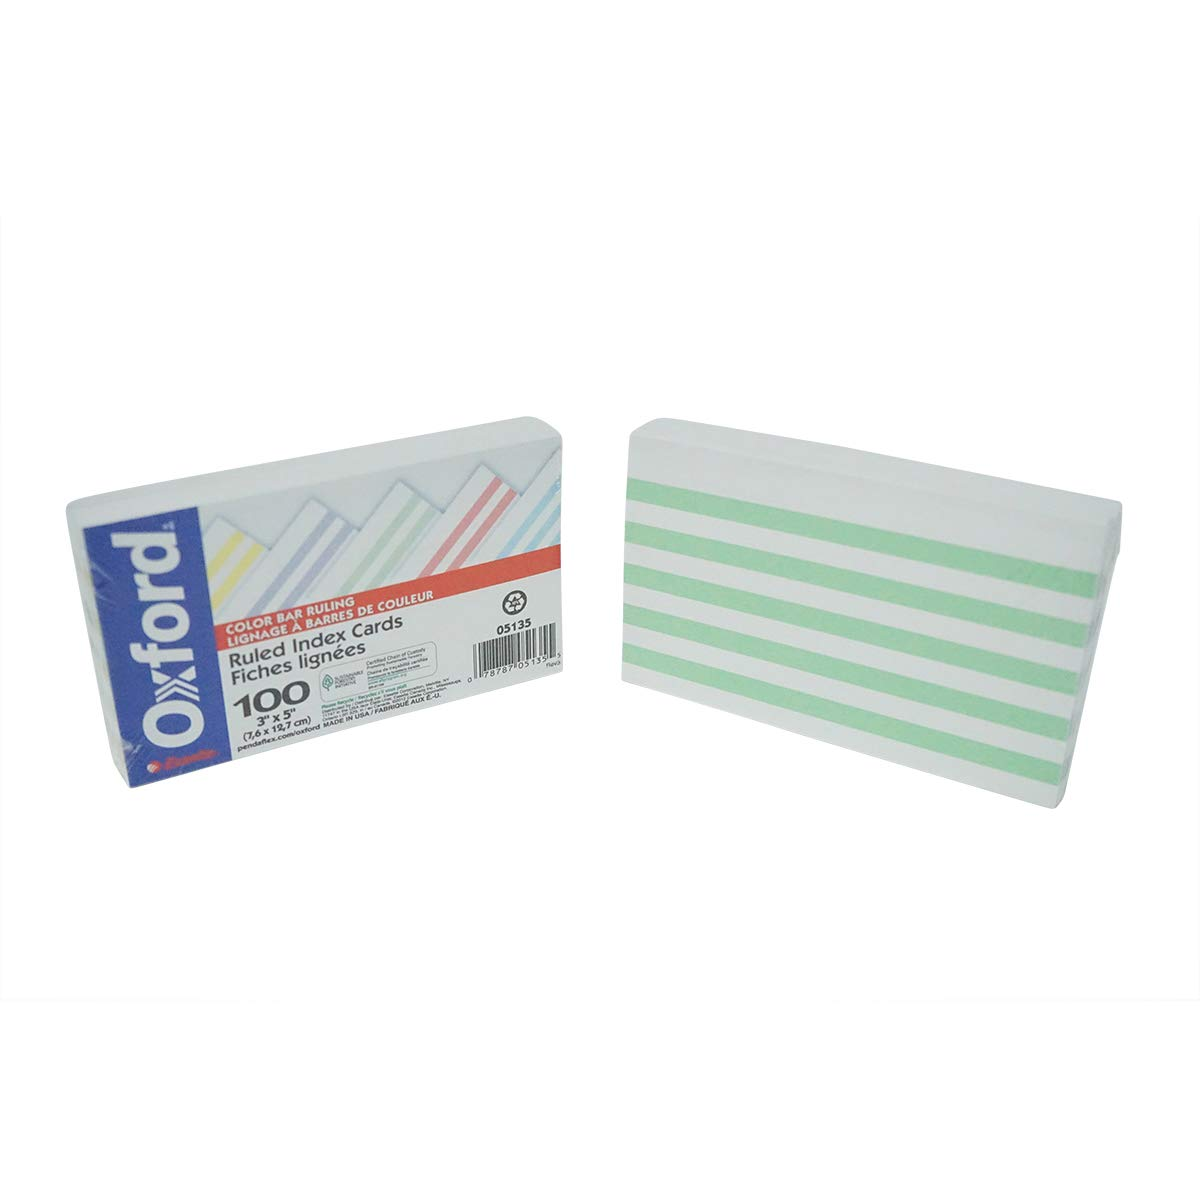 Oxford 2303730 3 x 5 in. Color Bar Ruled Index Cards - 100 Piece - Case of 72-72 Per Pack